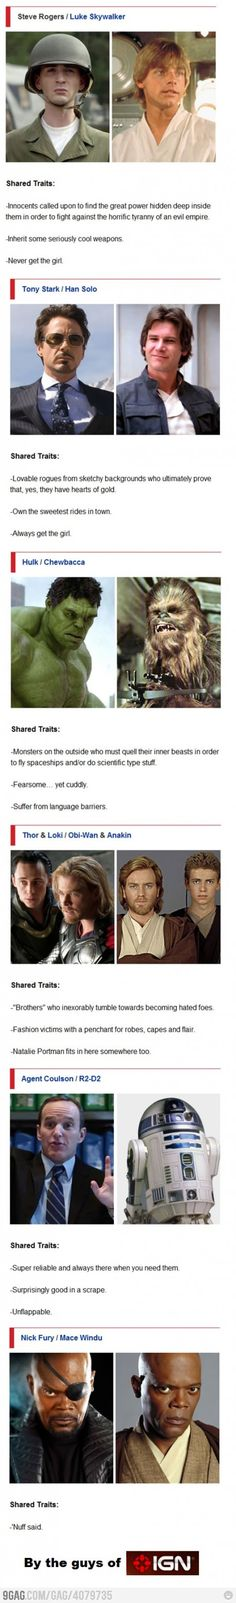 Similarities between the Avengers and Star Wars characters!